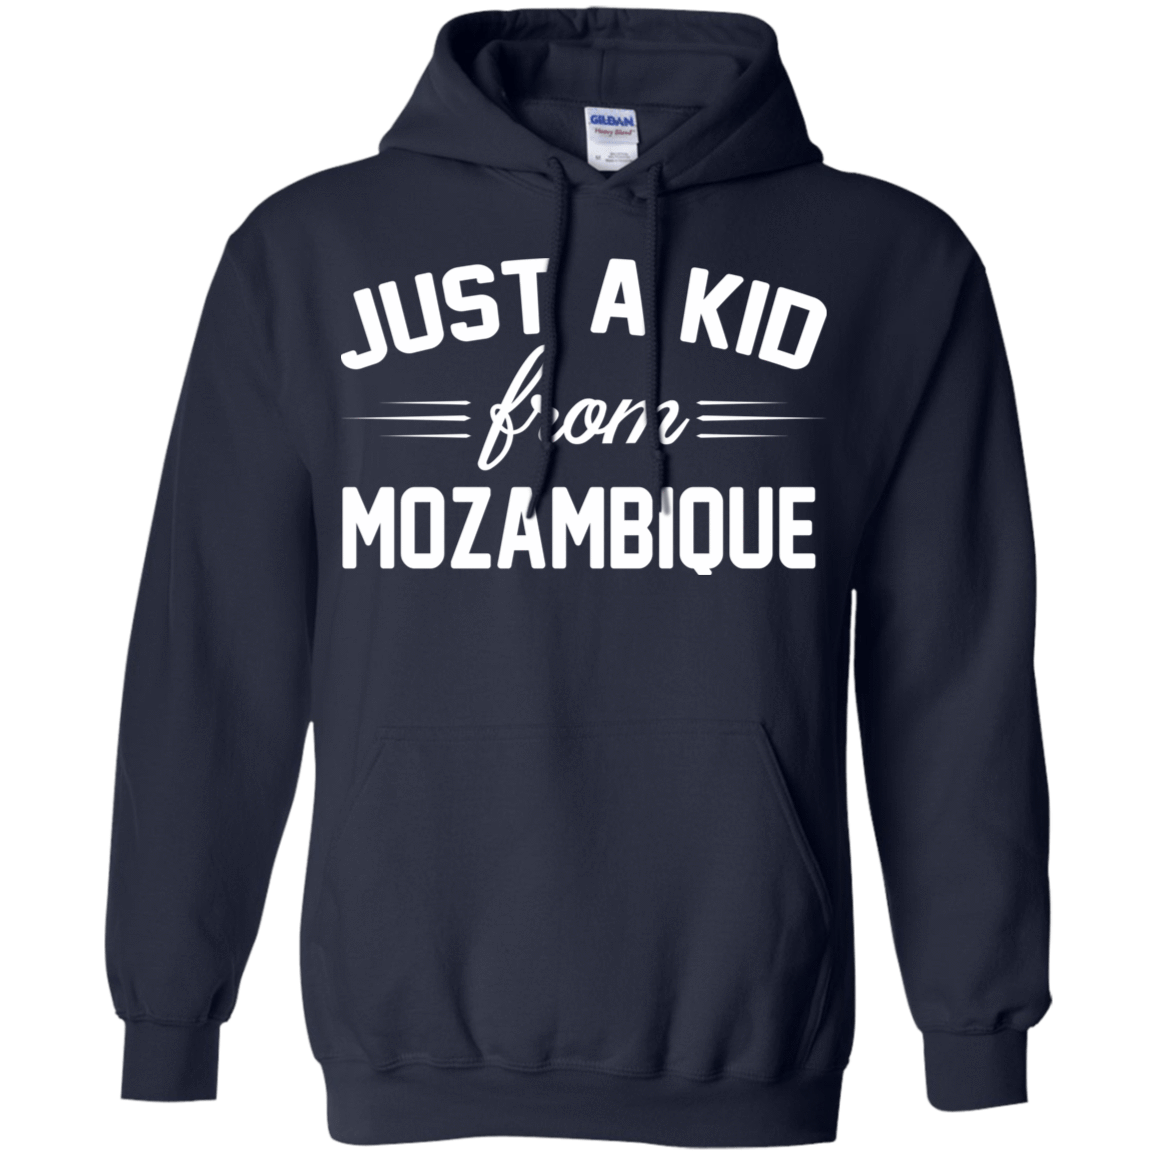 Just a Kid Store | Mozambique T-Shirts, Hoodie, Tank 541-4742-72091588-23135 - Tee Ript